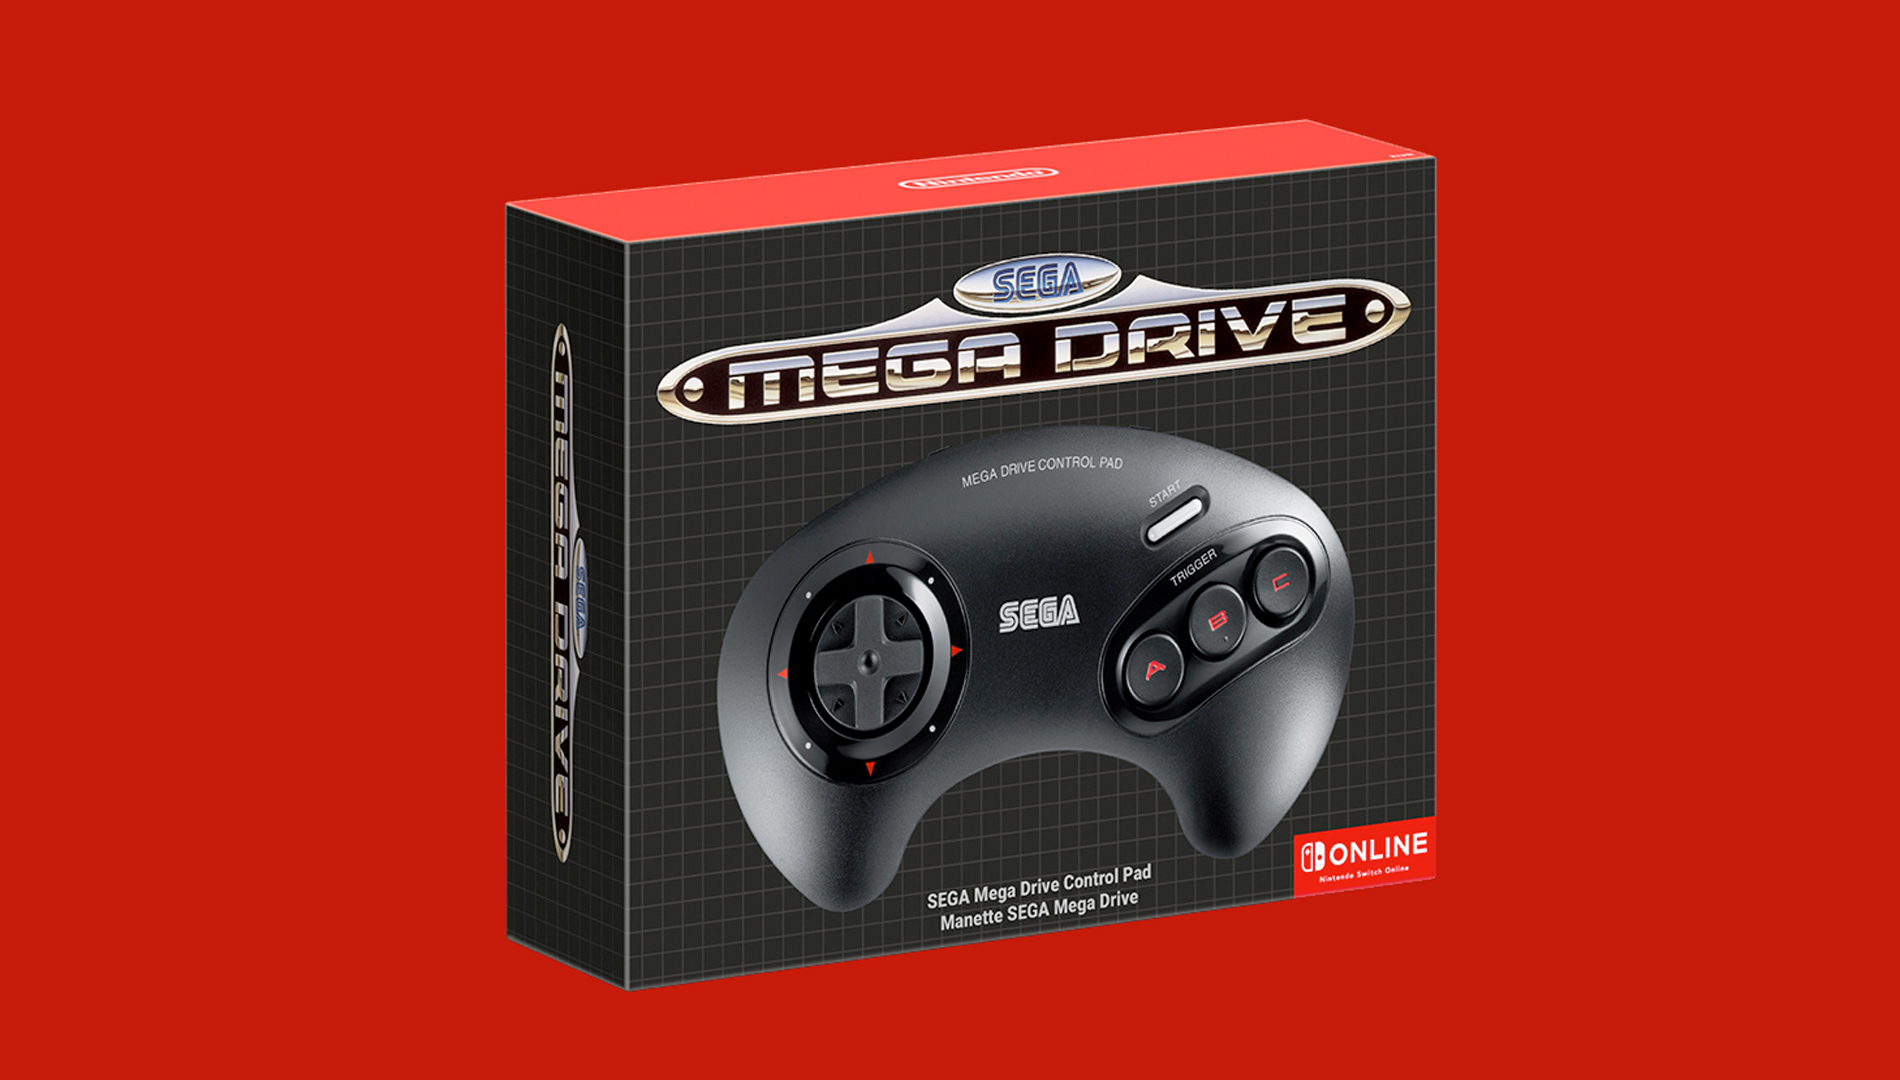 Nintendo Switch: Why the 3-button Mega Drive controller in the West?  Nintendo explains